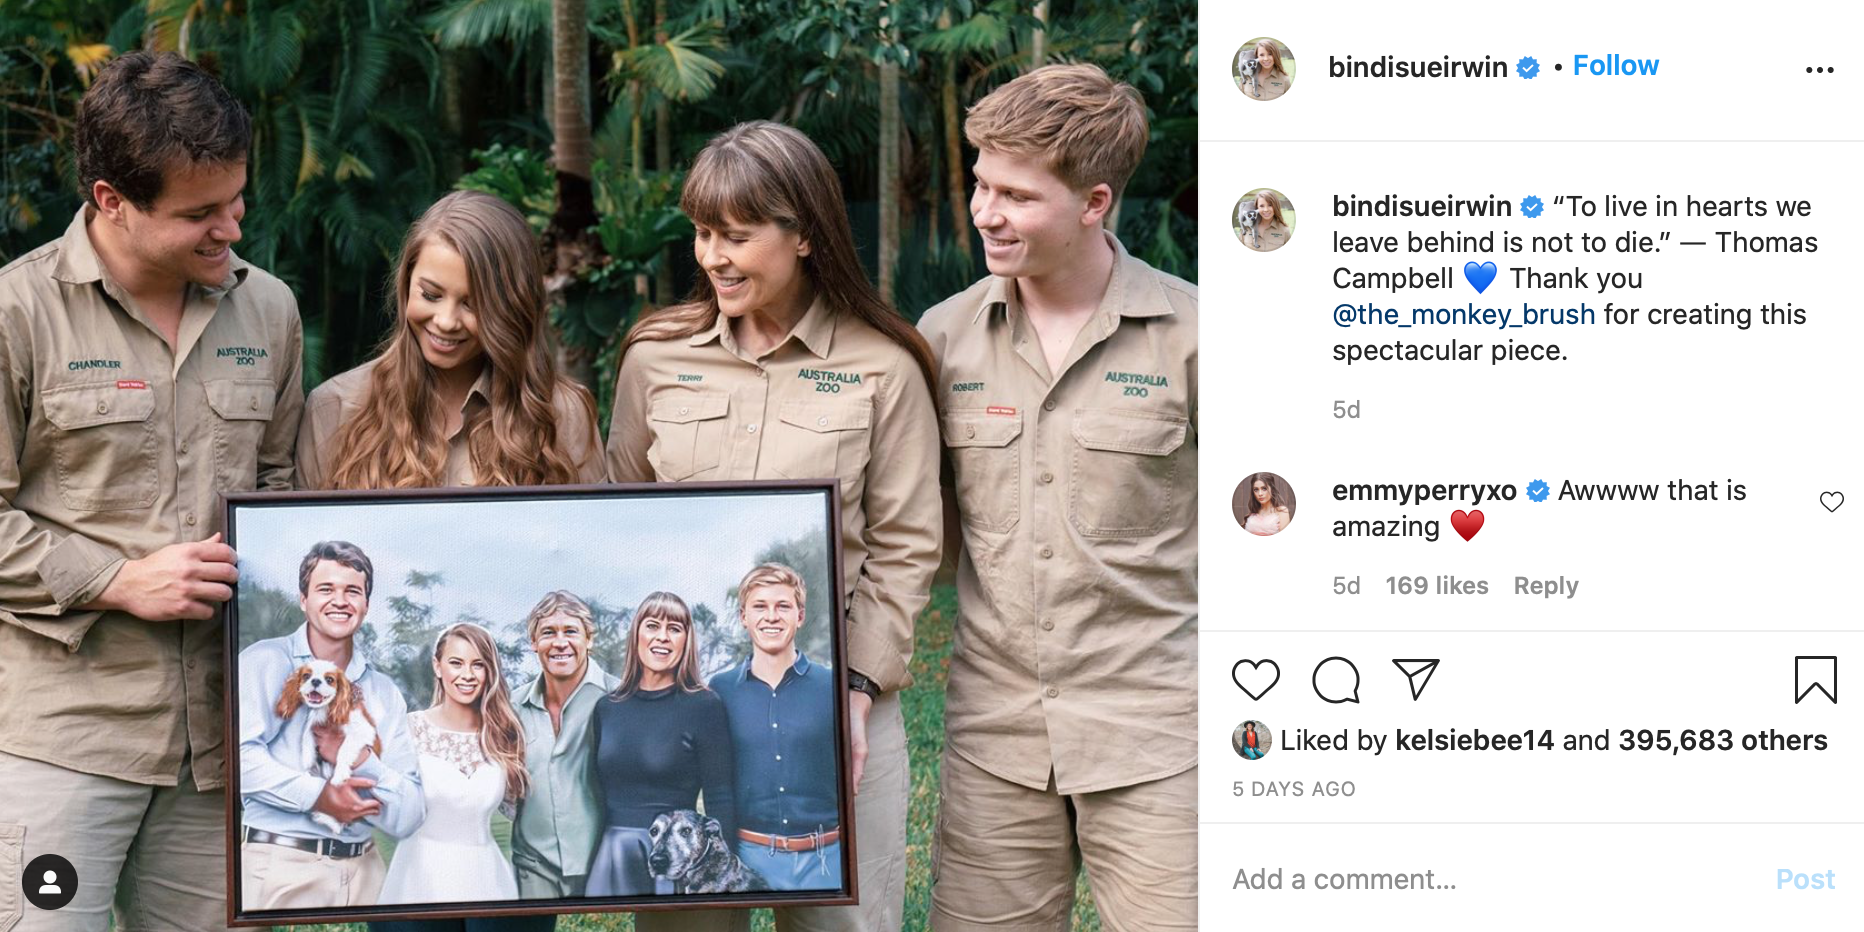 Bindi Irwin and family holding a portrait of their family at Bindis wedding